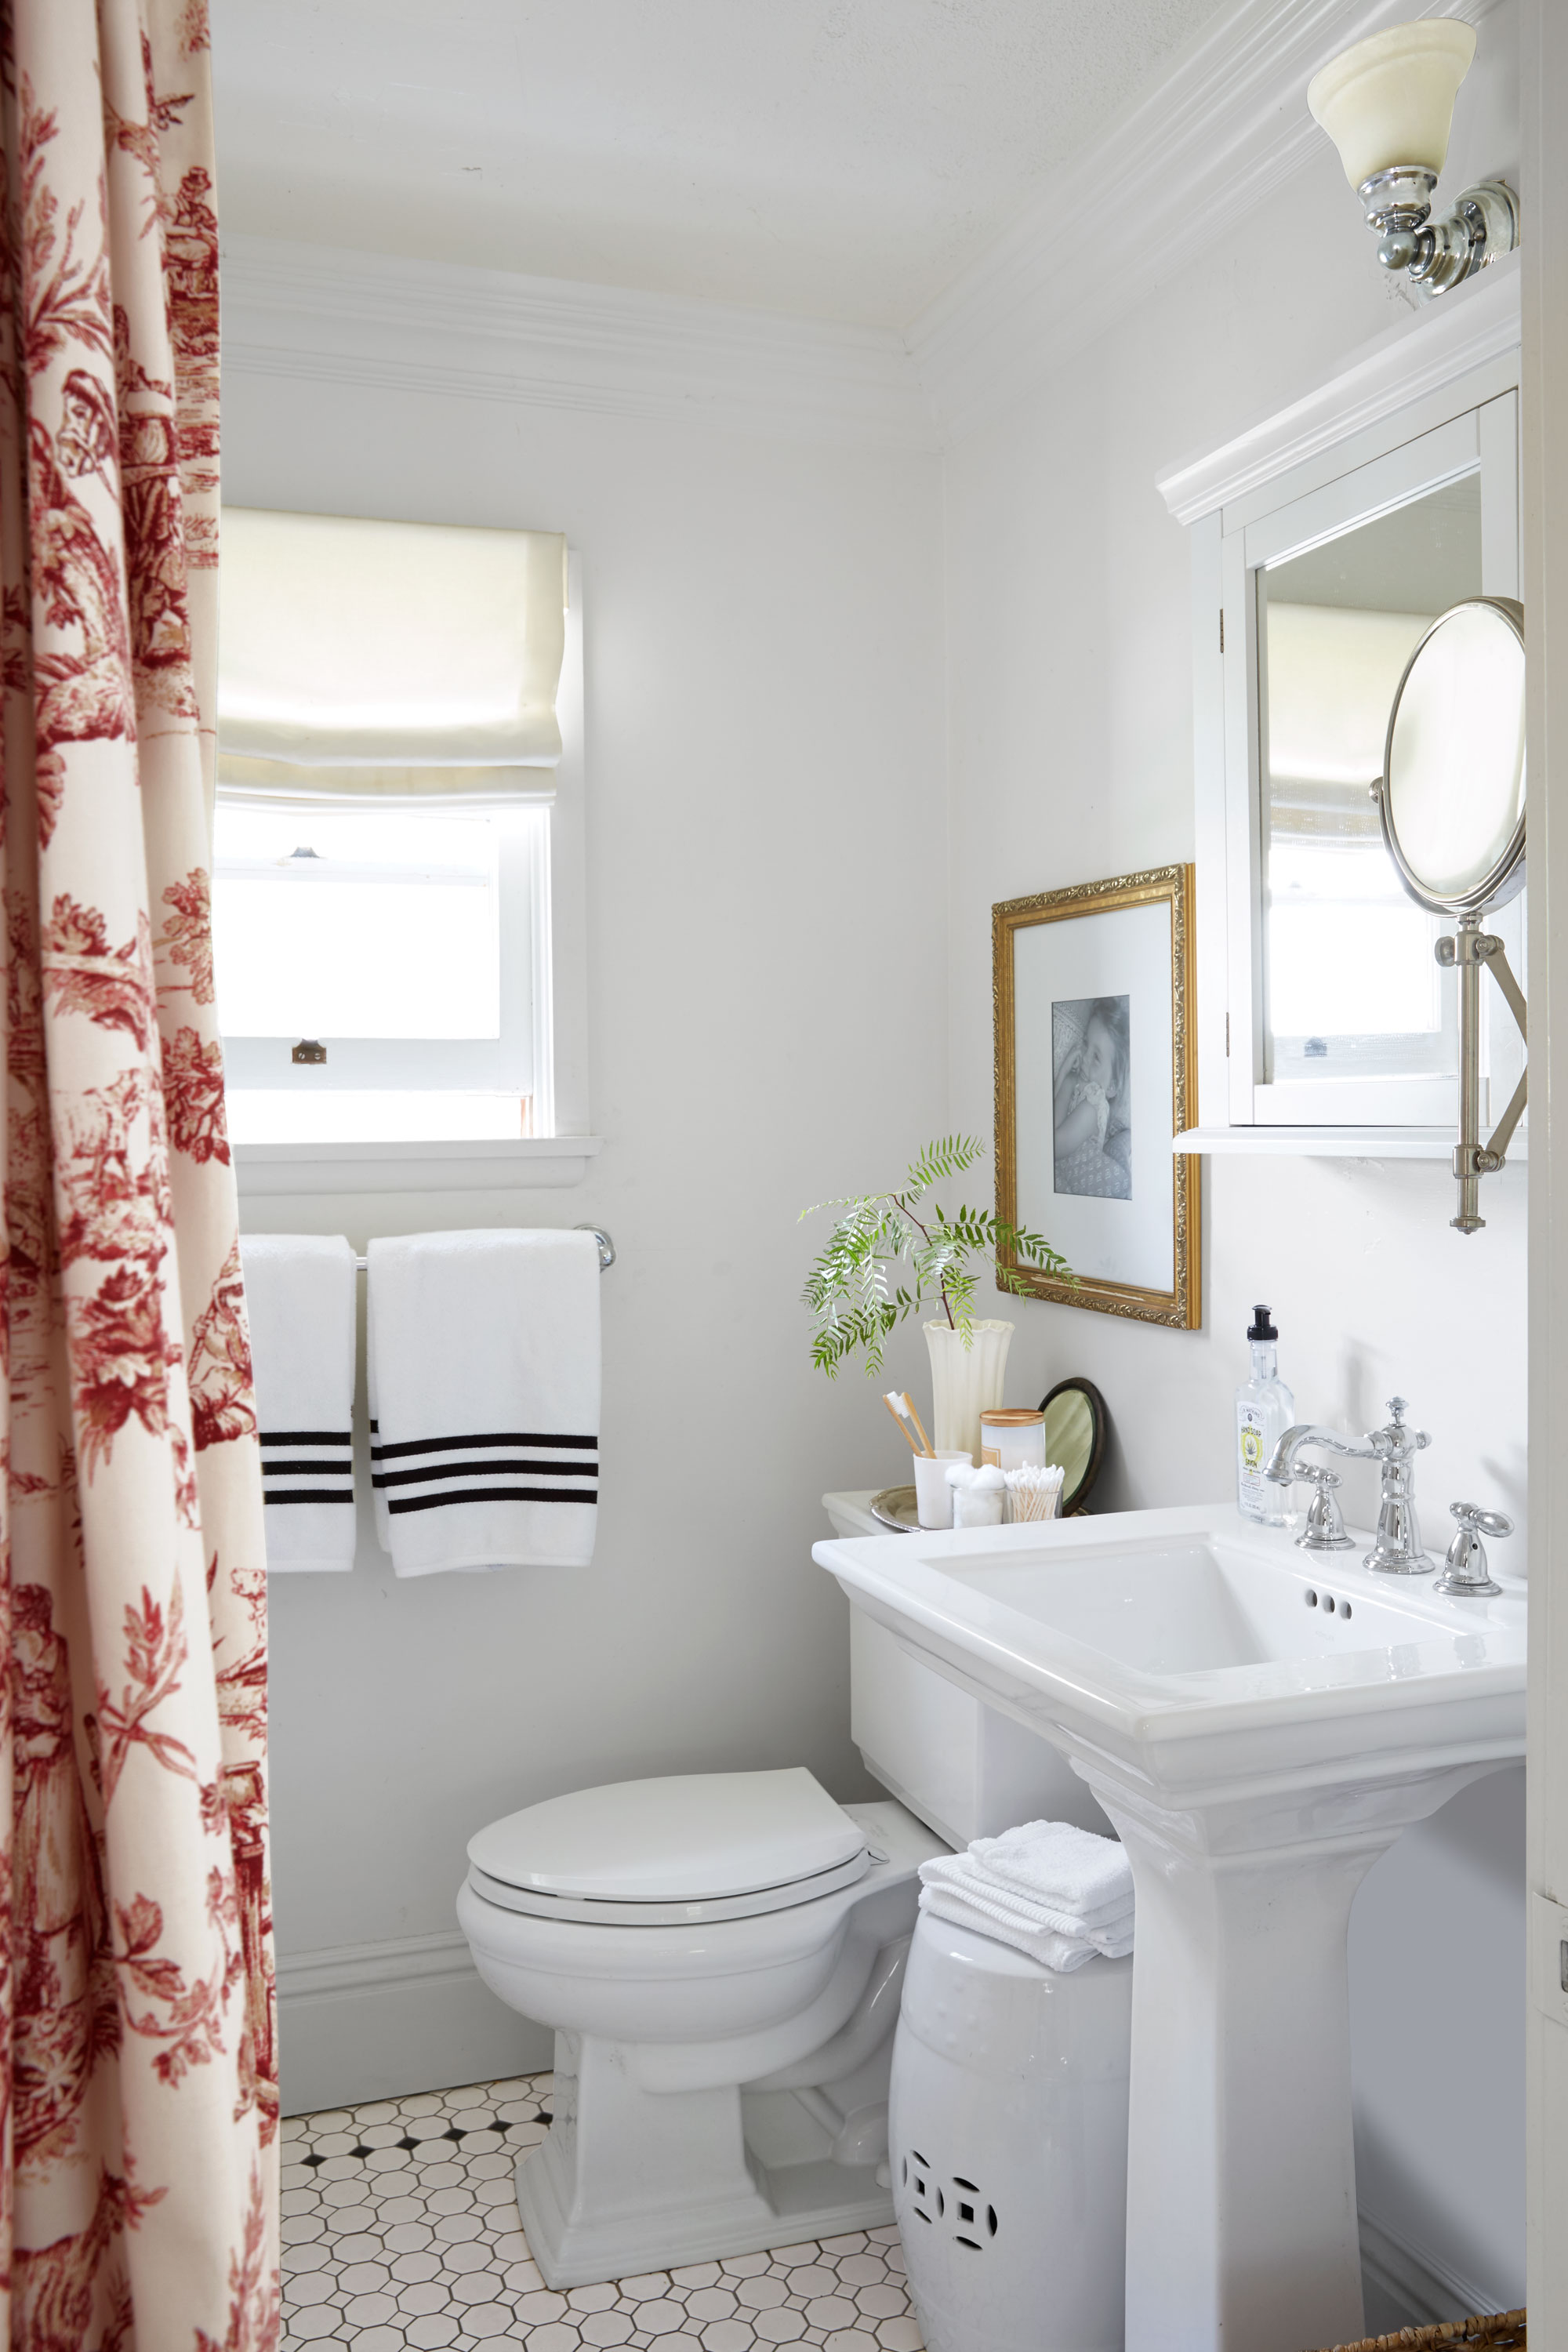 How to decorate bathroom also add bathroom wall accessories ideas also add how to decorate a small cloakroom also add very small bathroom decorating ideas